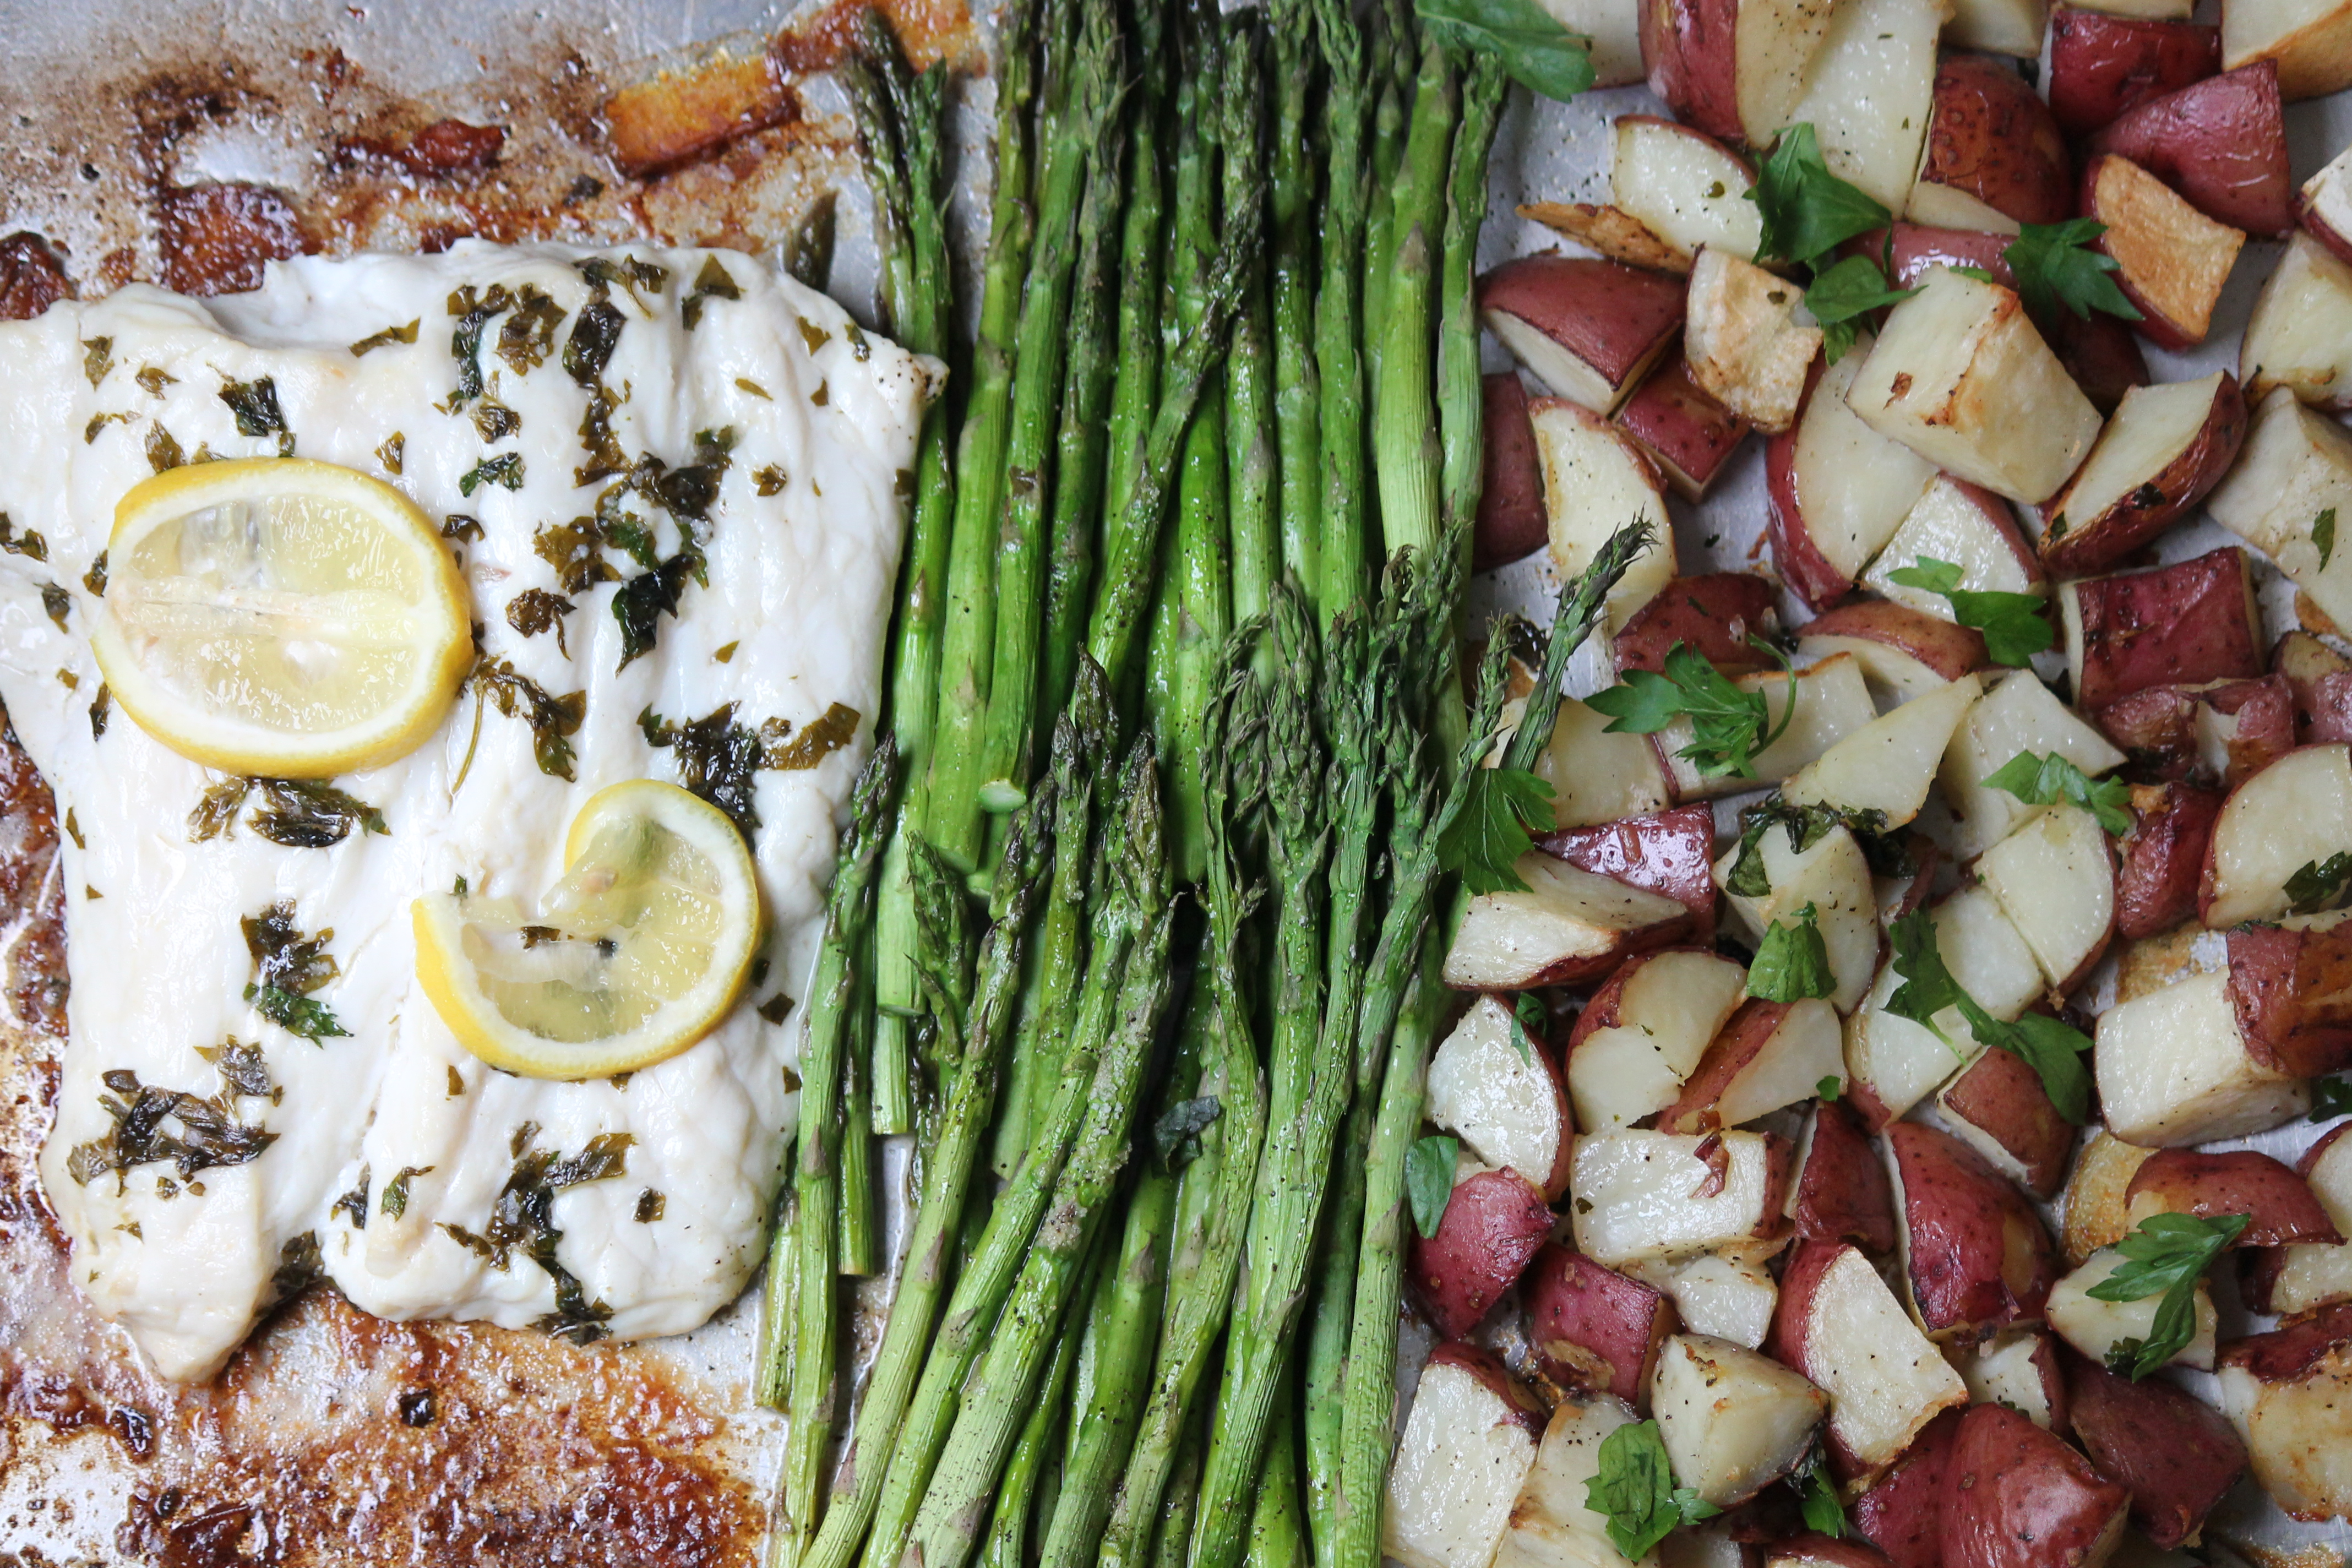 Sheet Pan Herb Crusted Halibut with Potatoes and Veggies